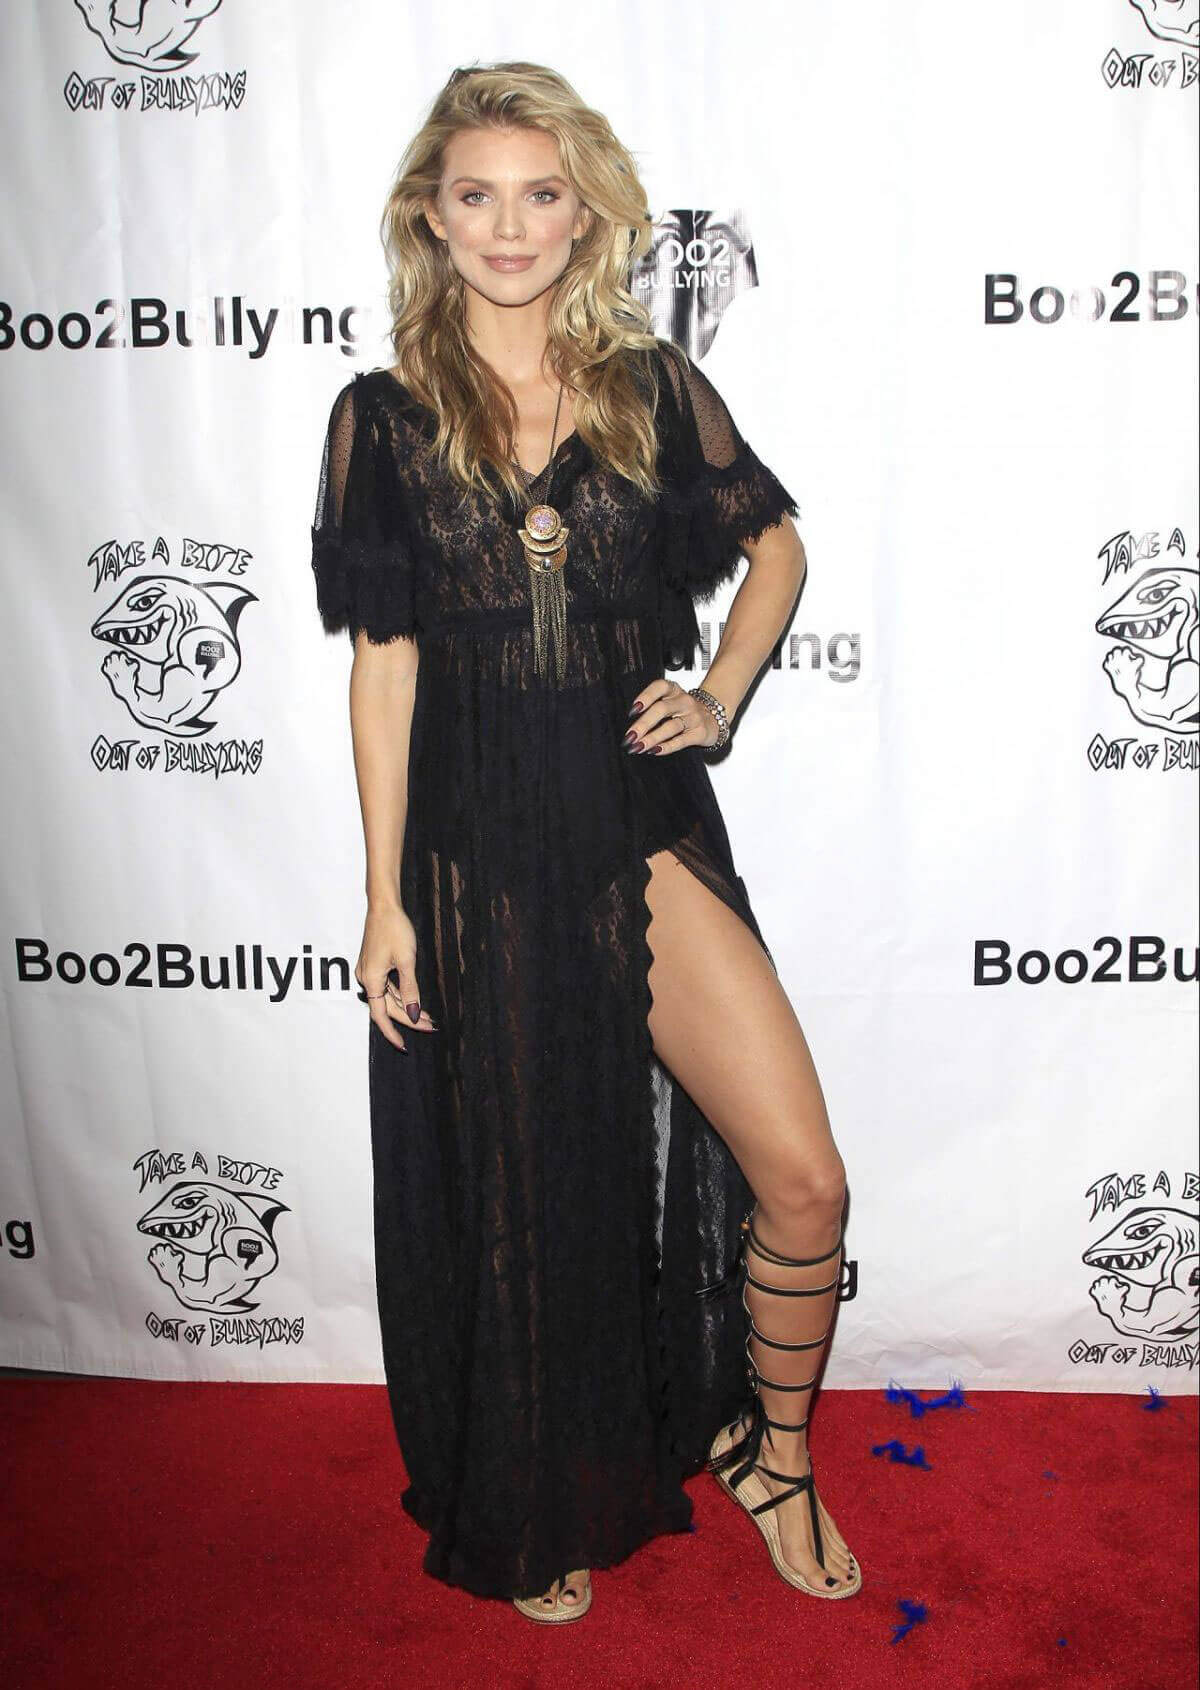 AnnaLynne McCord Stills Take a Bite Out of Bullying Event in Hollywood